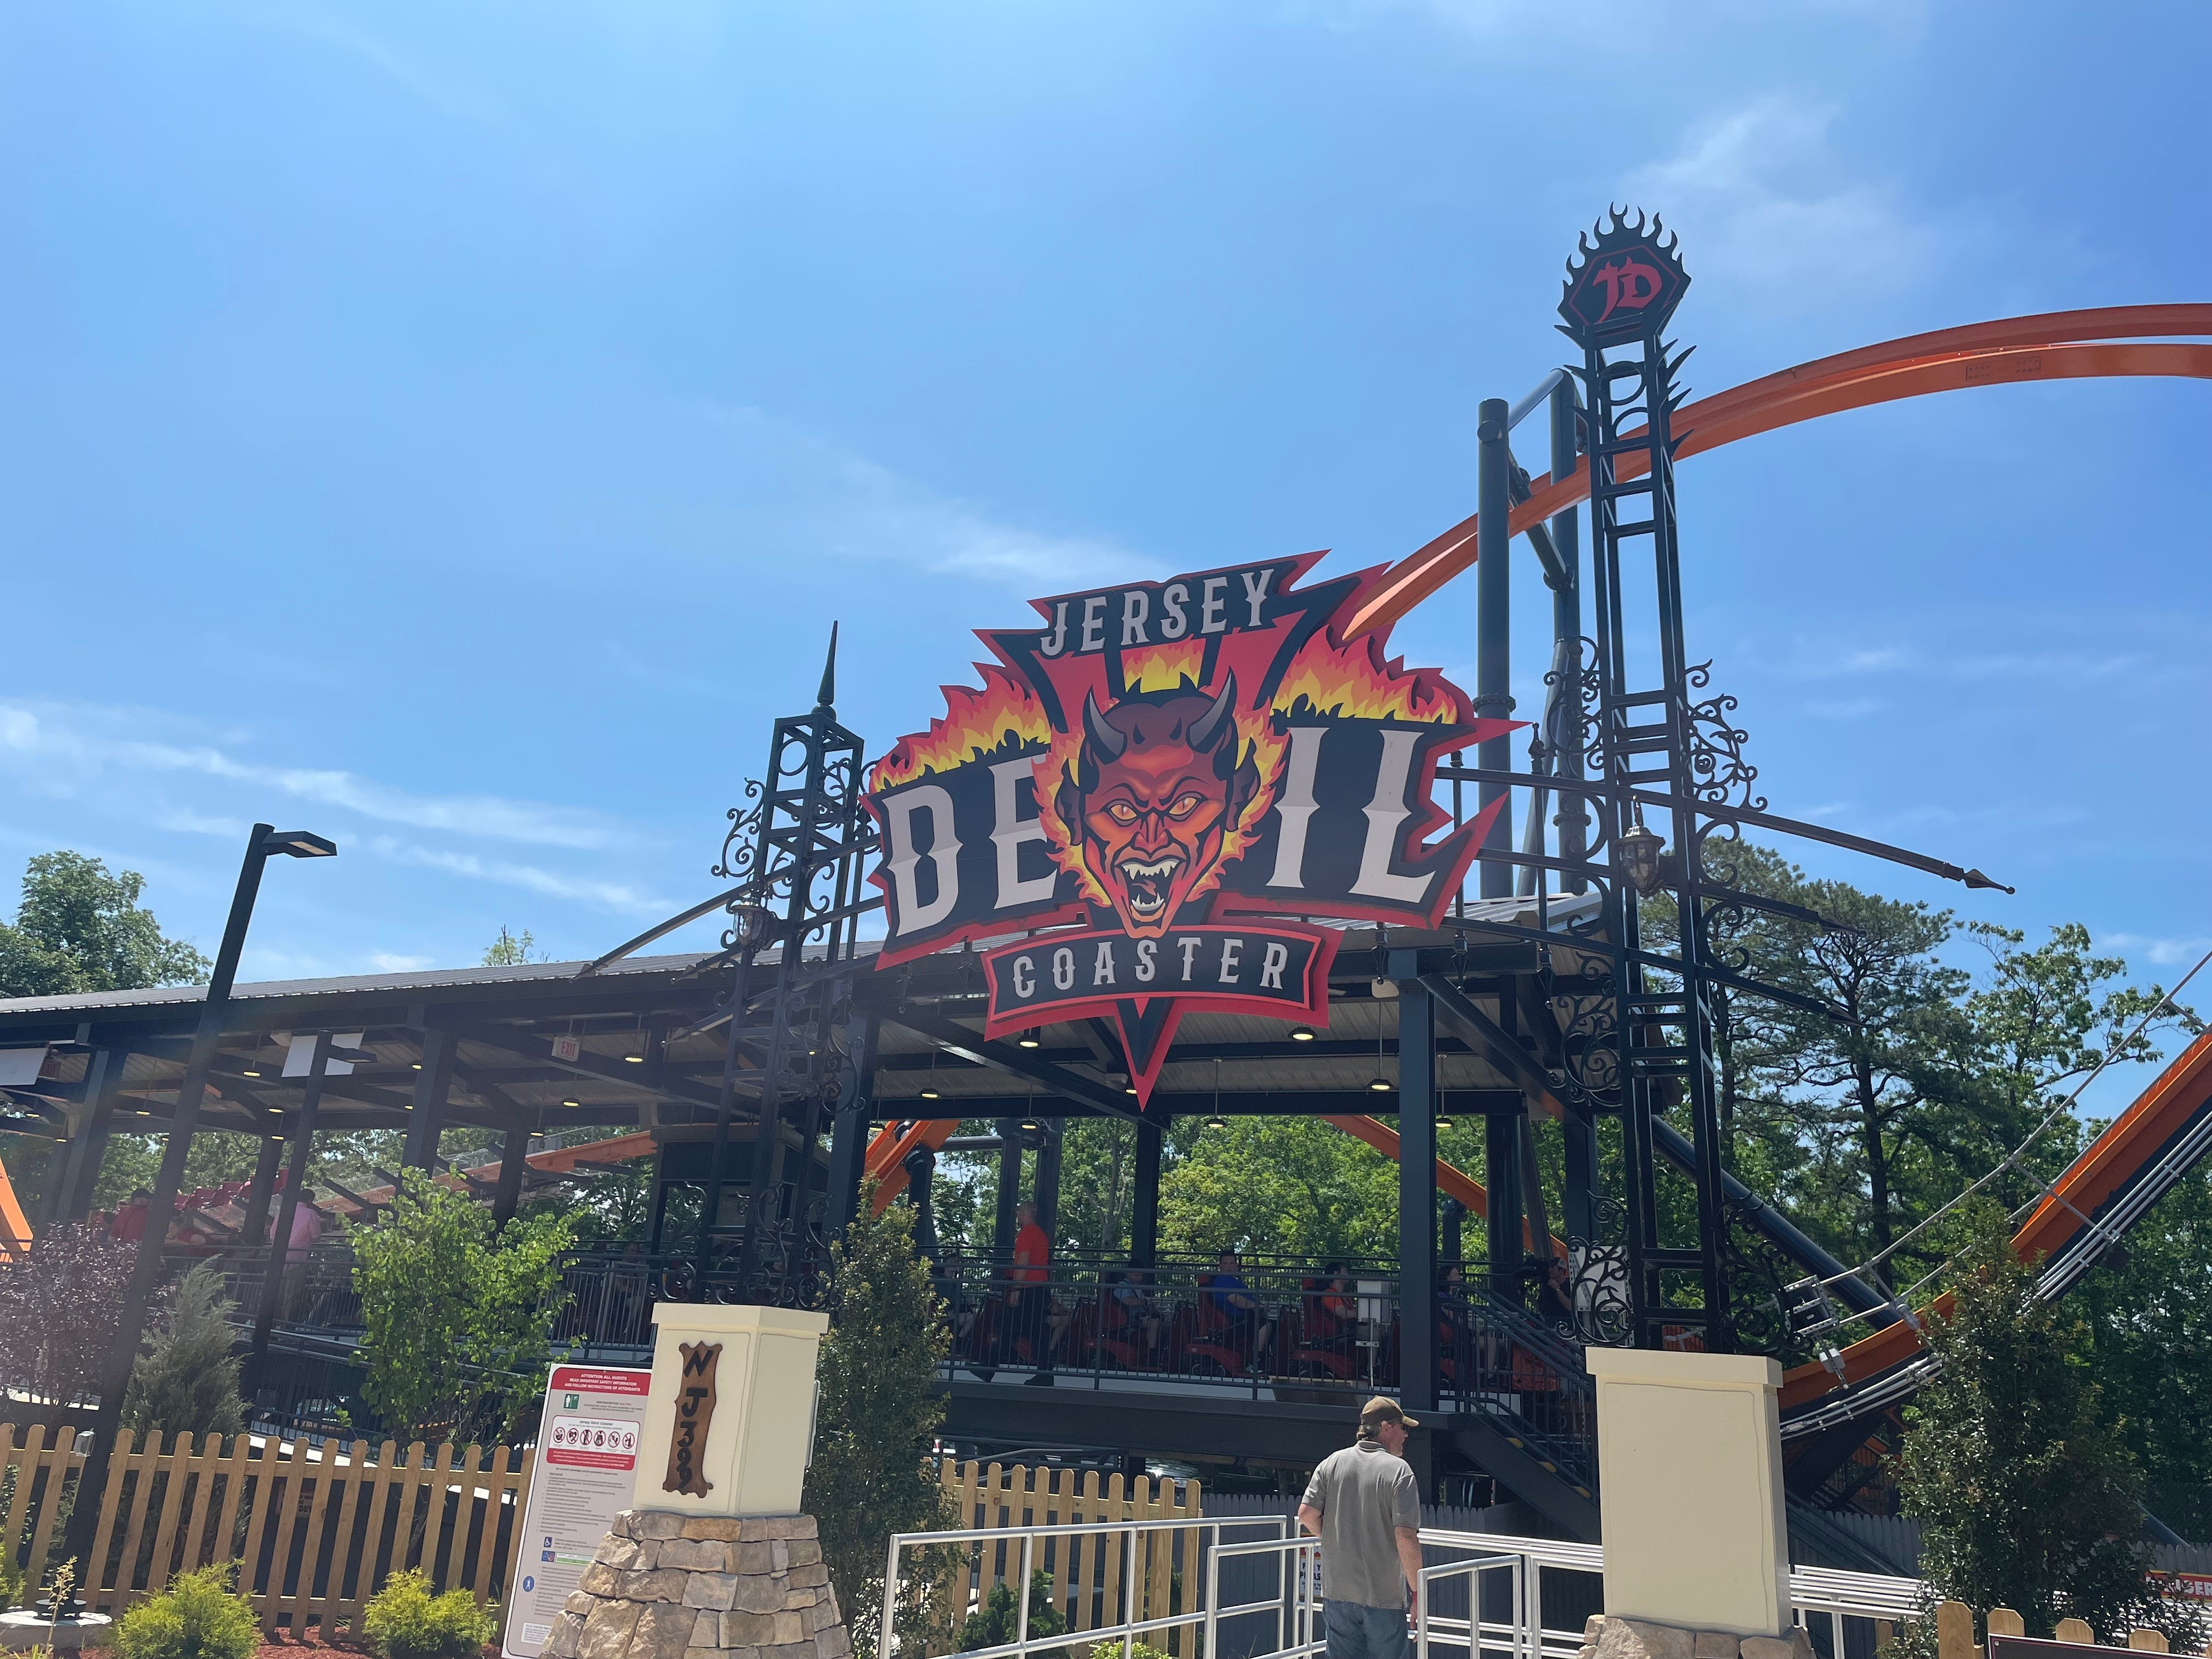 Review Jersey Devil Coaster The World S Tallest Fastest Longest Single Rail Coaster Page 1